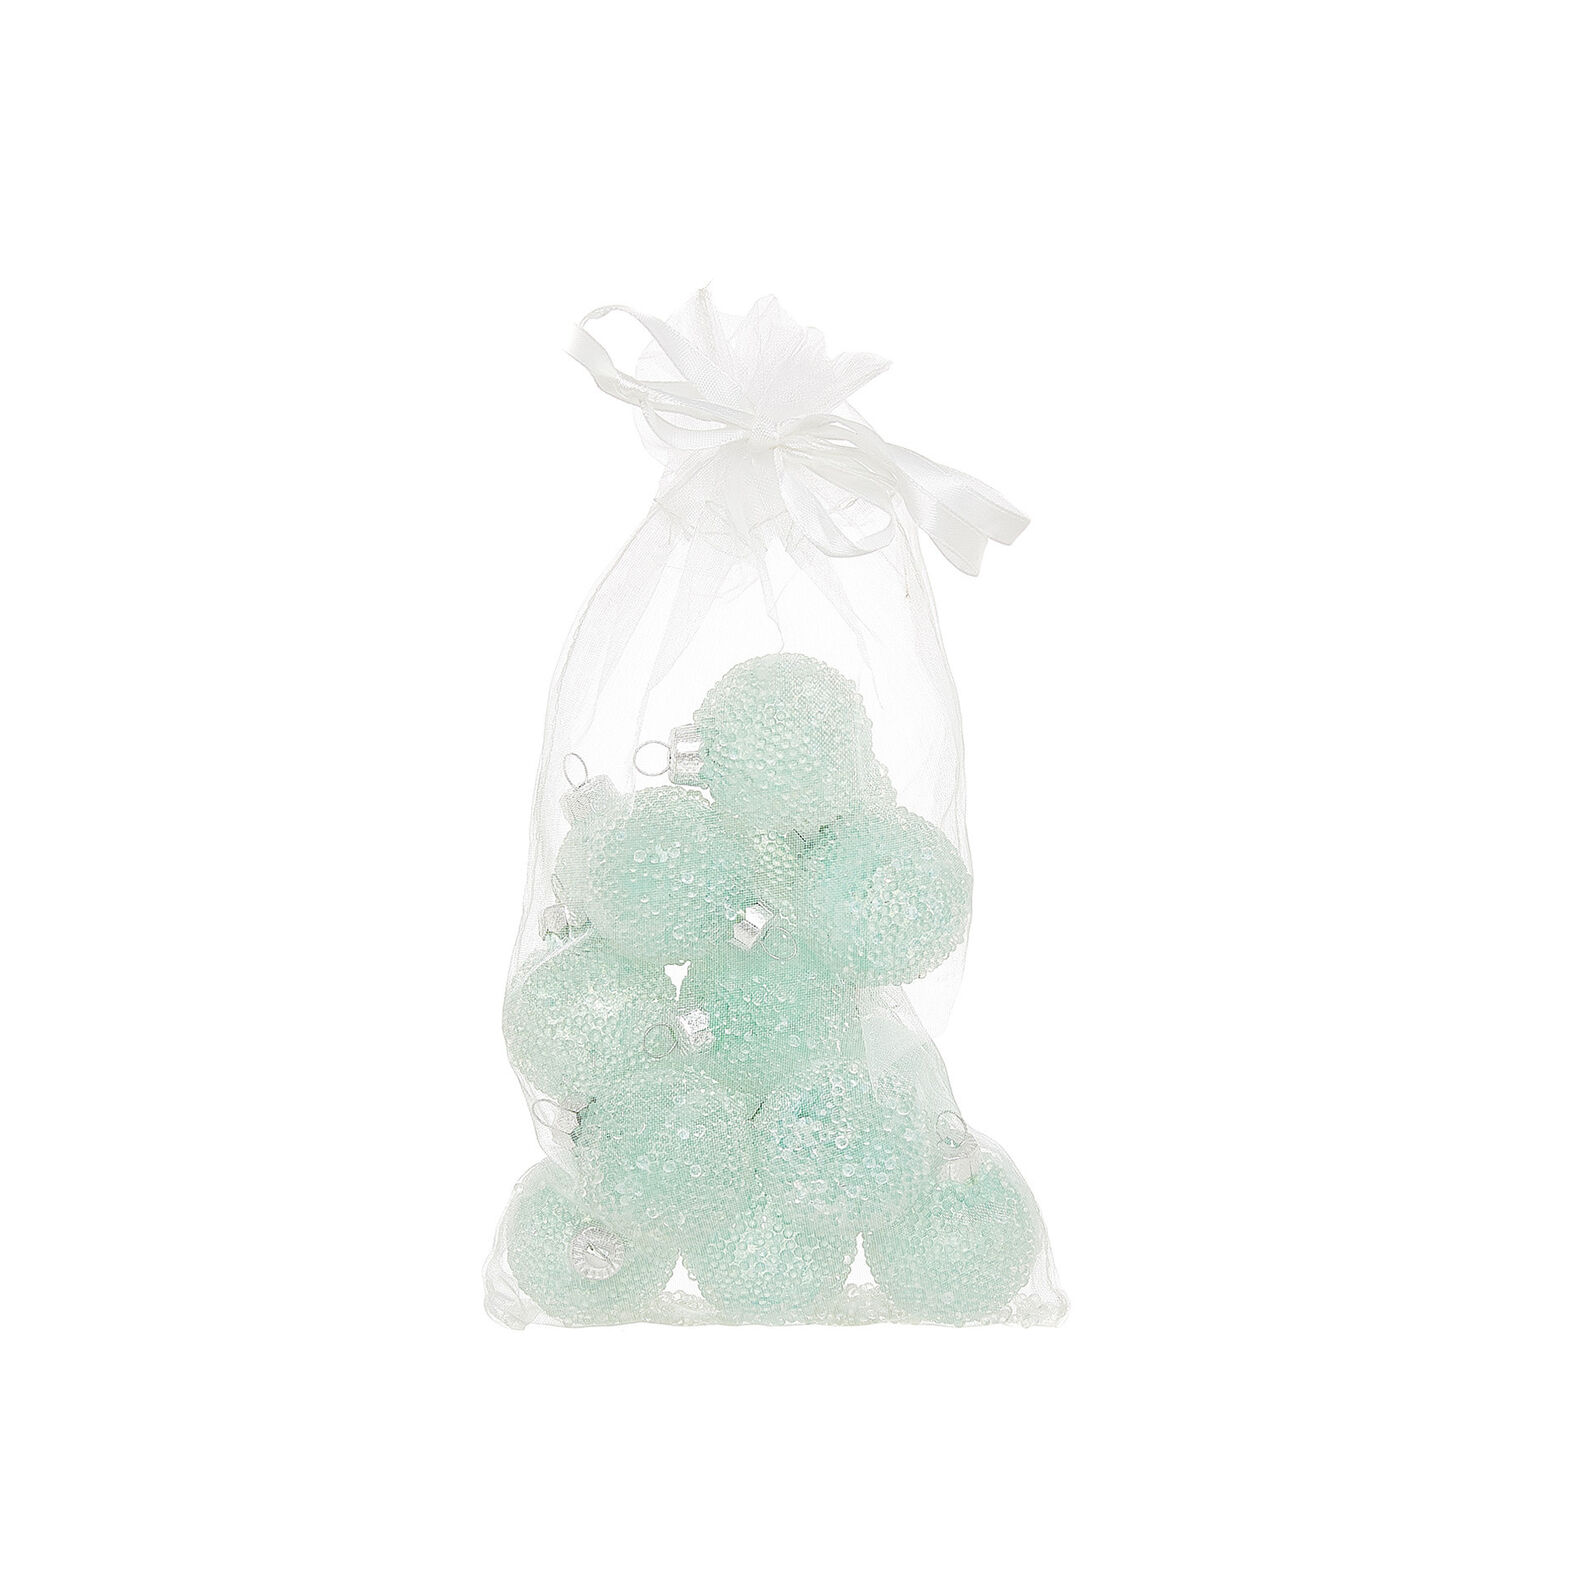 Bag of 15 frost-effect baubles